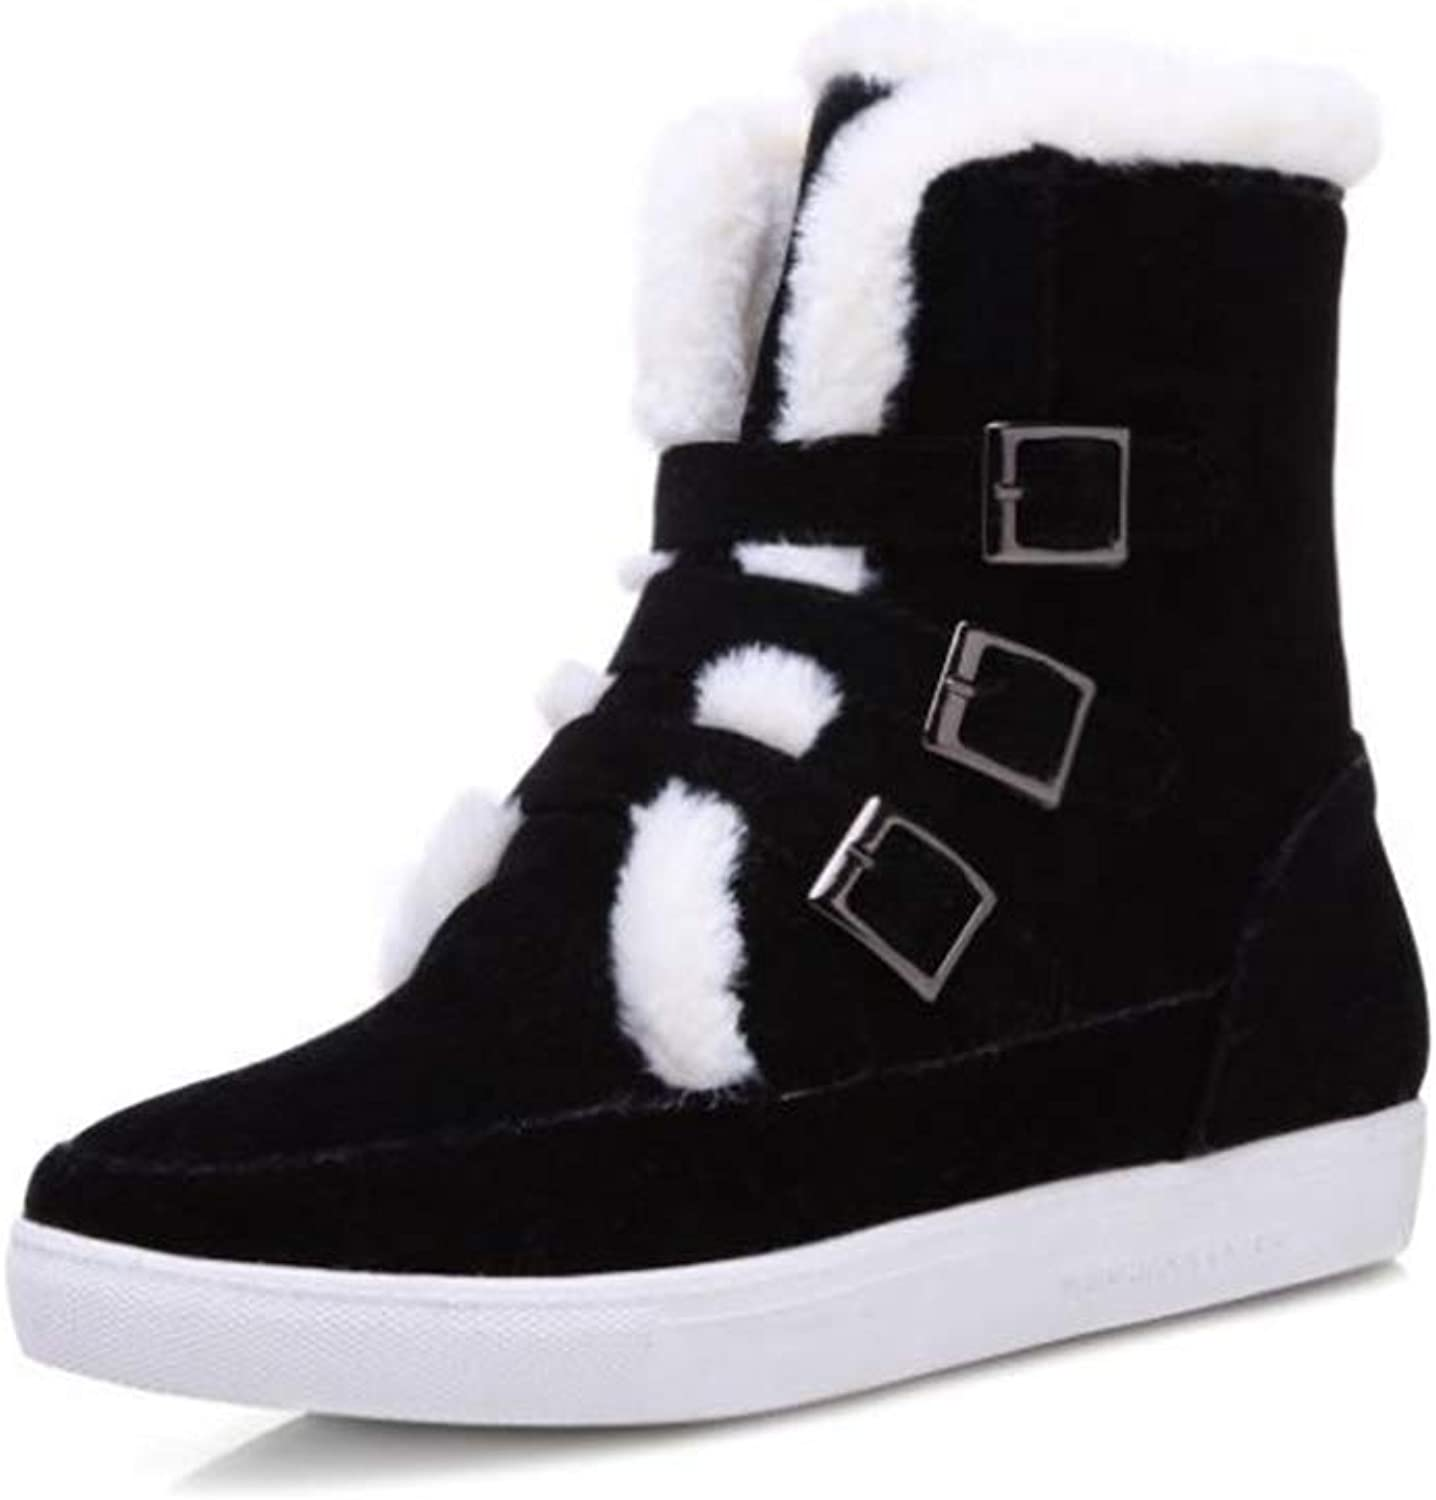 Fancyww Women's Platform Snow Boots Round Toe Thick Boots